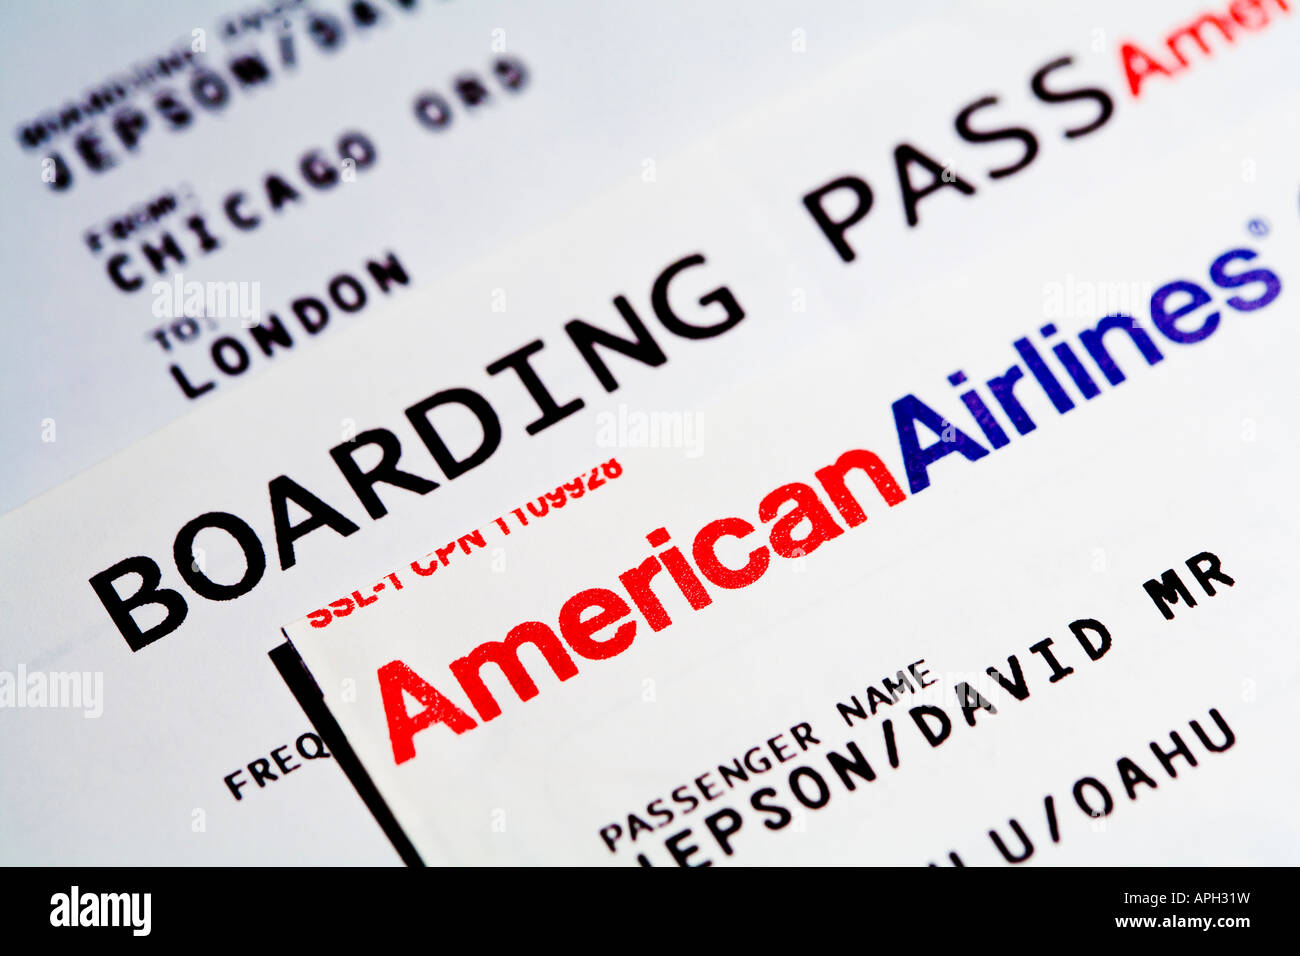 American Airlines Flight Boarding Passes Stock Photo